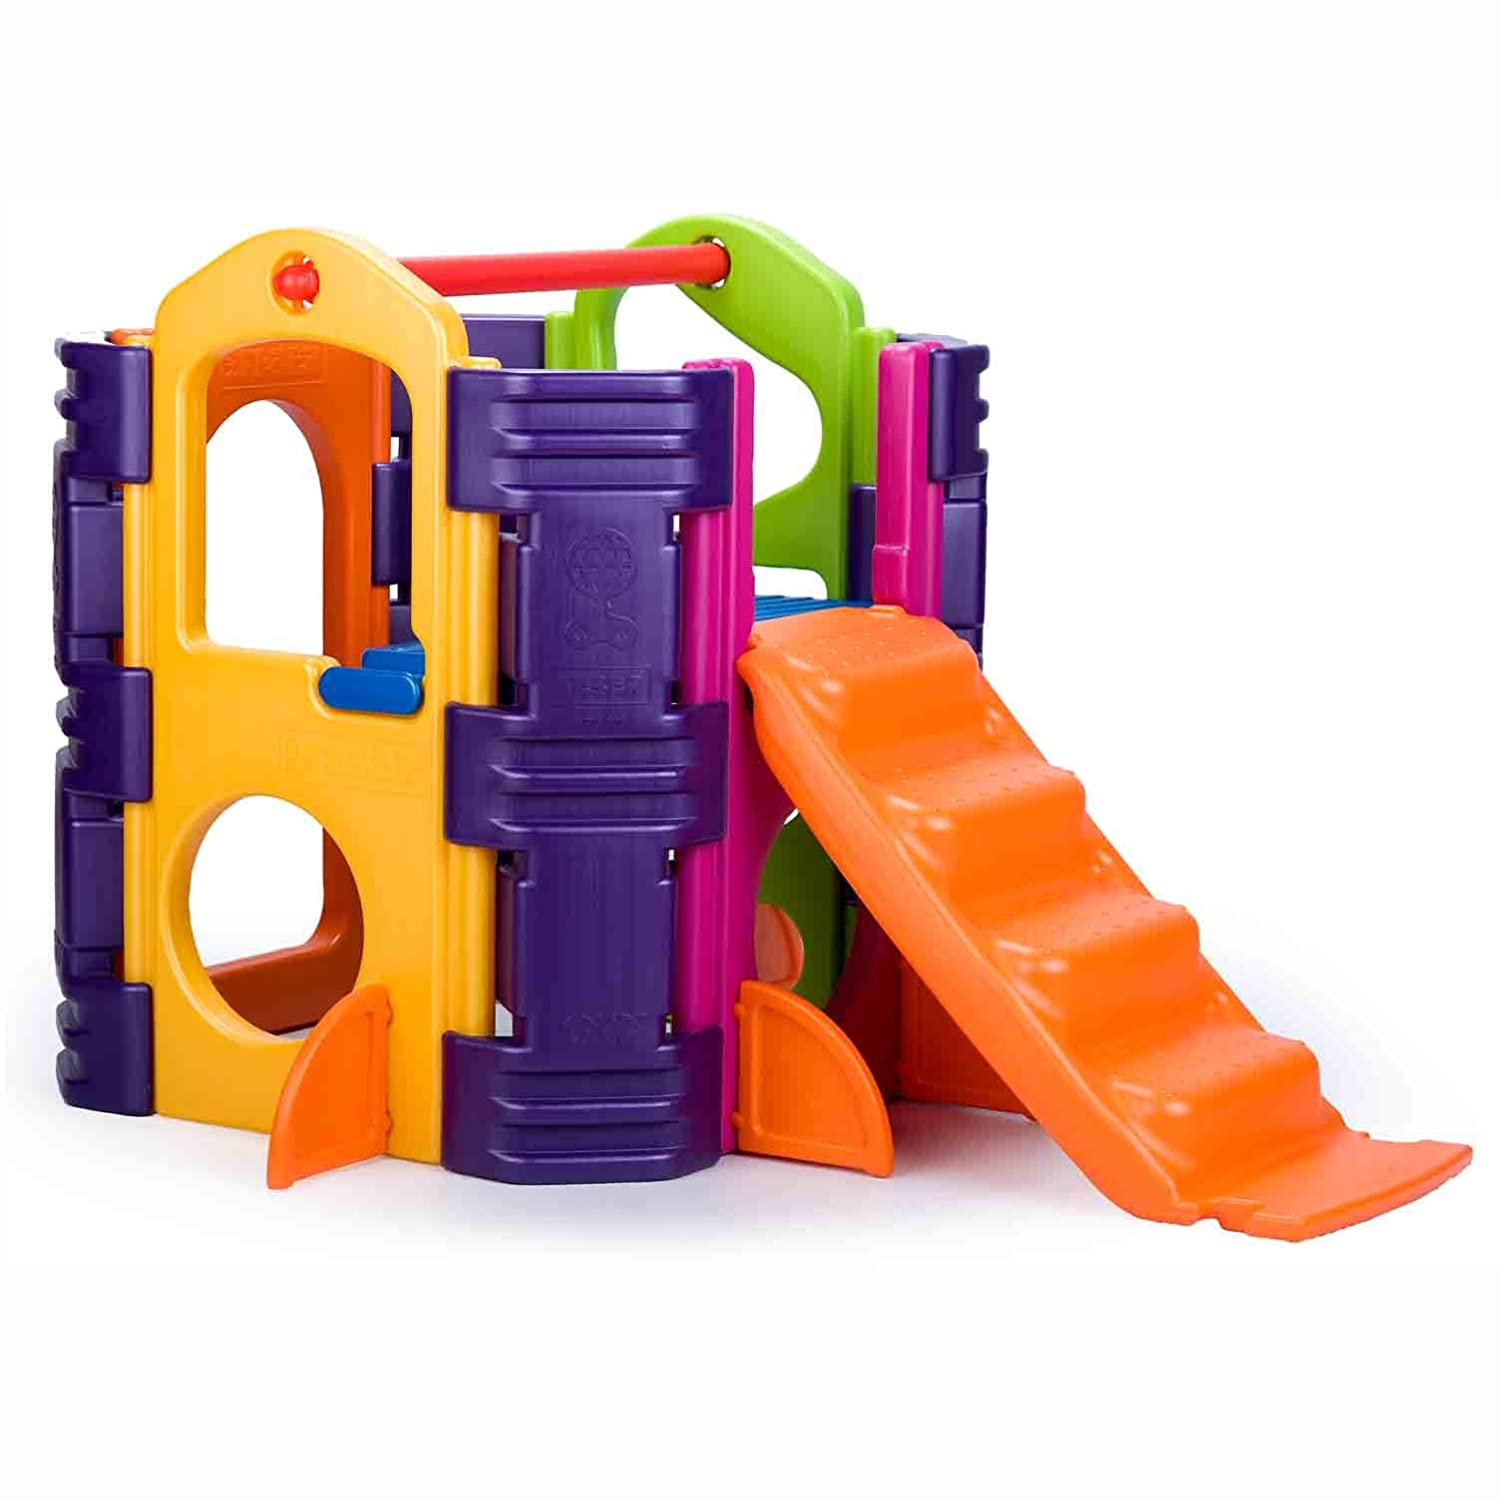 FEBER ACTIVITY PARK OUTDOOR GARDEN ACITIVITY KIDS TOYS Amazon